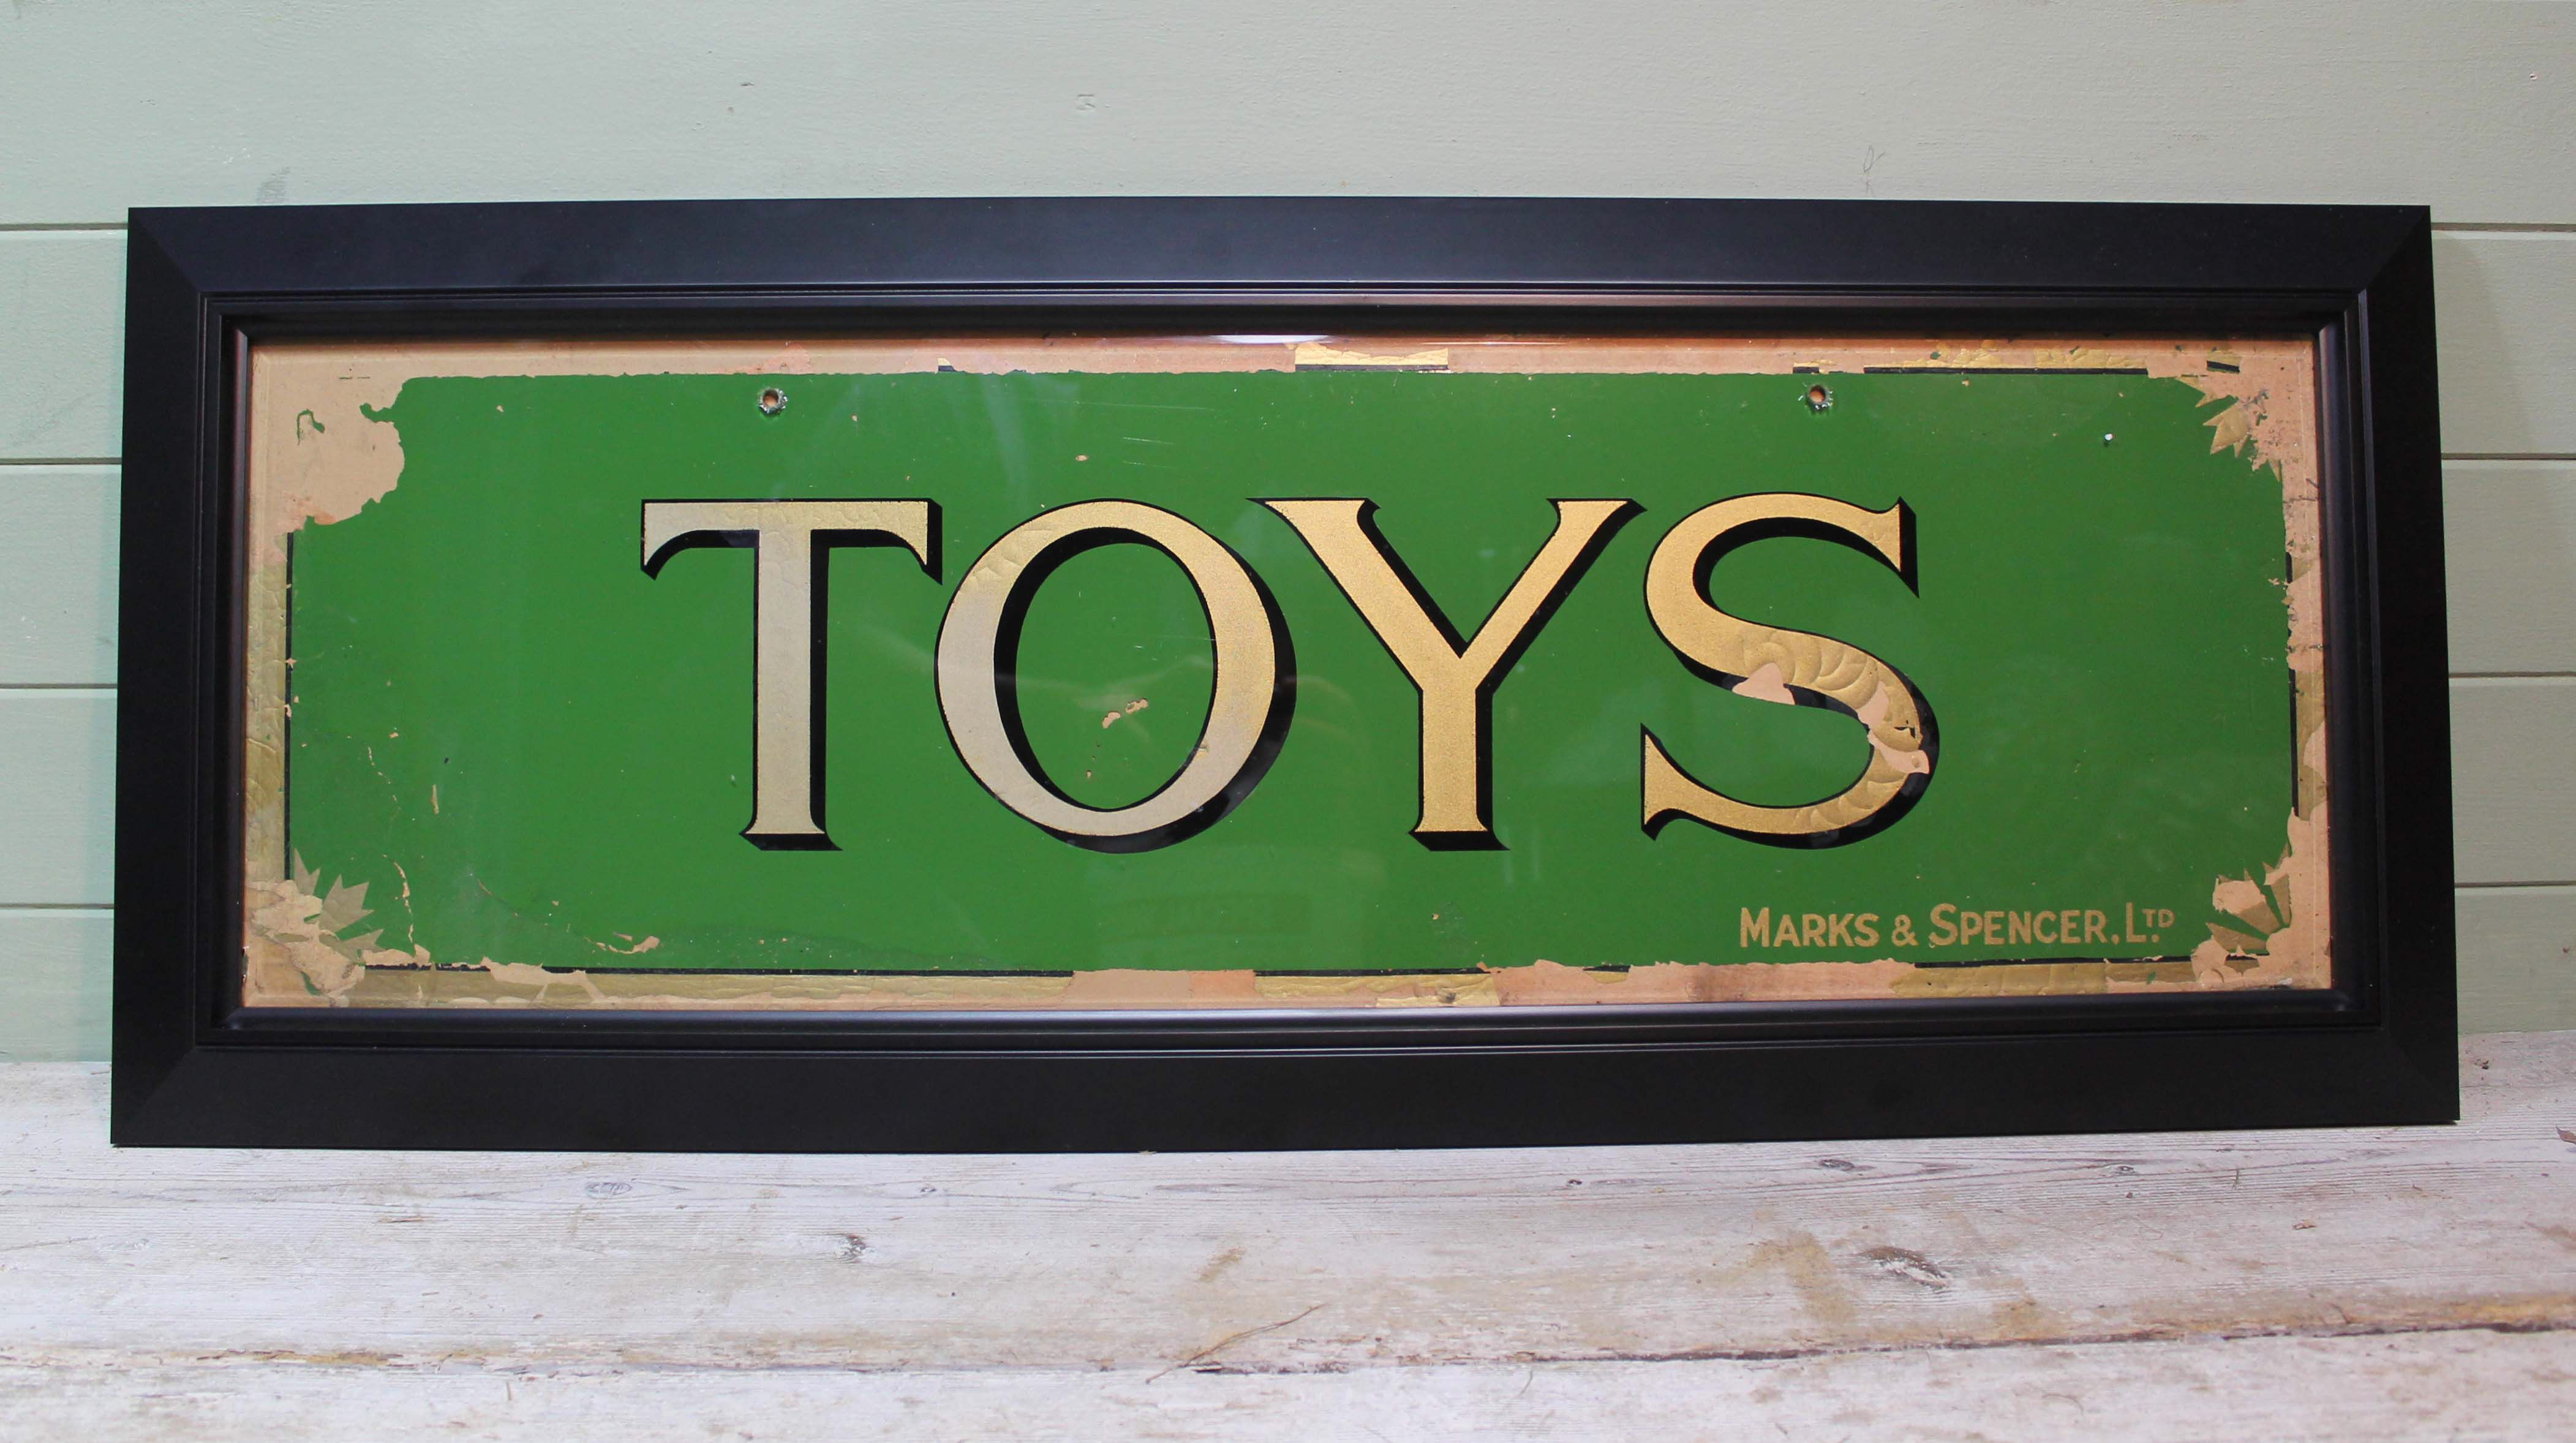 Original 1930s glass shop sign Marks and Spencer - just in at www.robhallantiques.co.uk